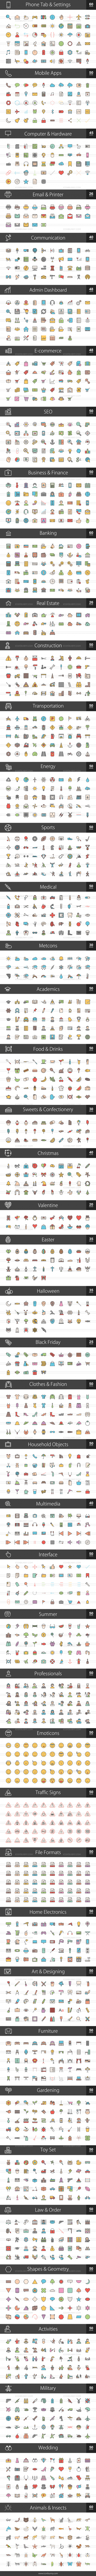 2070 Line Multicolor Filled Icons Bundle - Preview - IconBunny